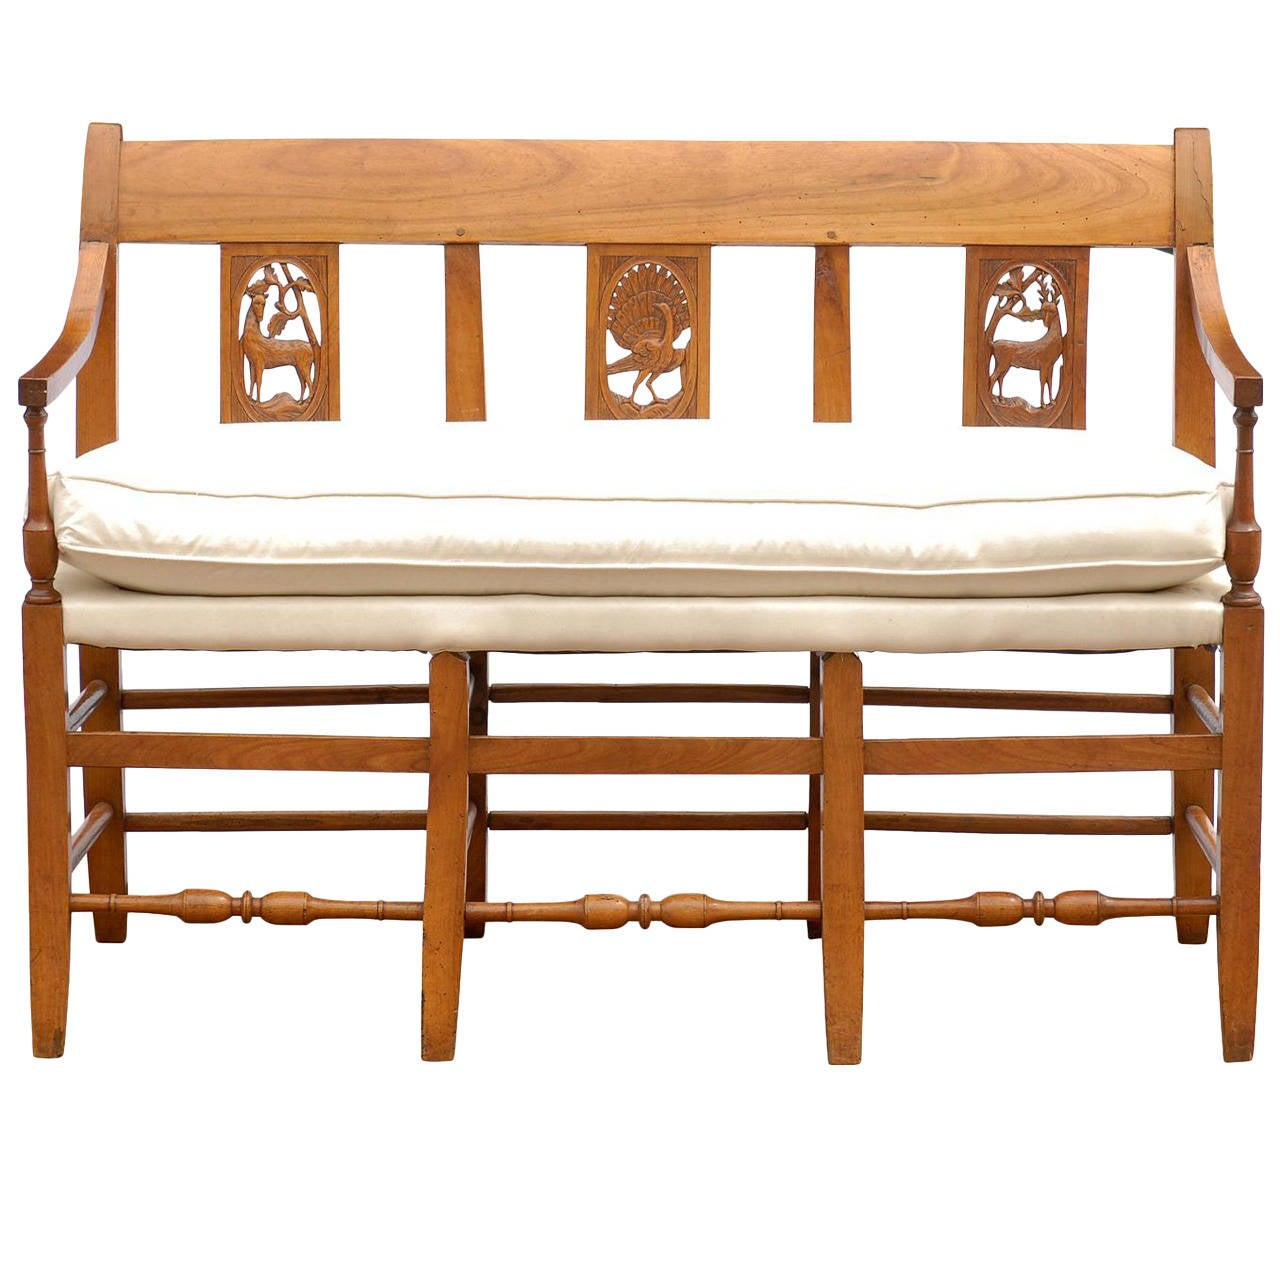 French Mid 19th Century Wooden Bench With Carved Back And Upholstered Seat For Sale At 1stdibs